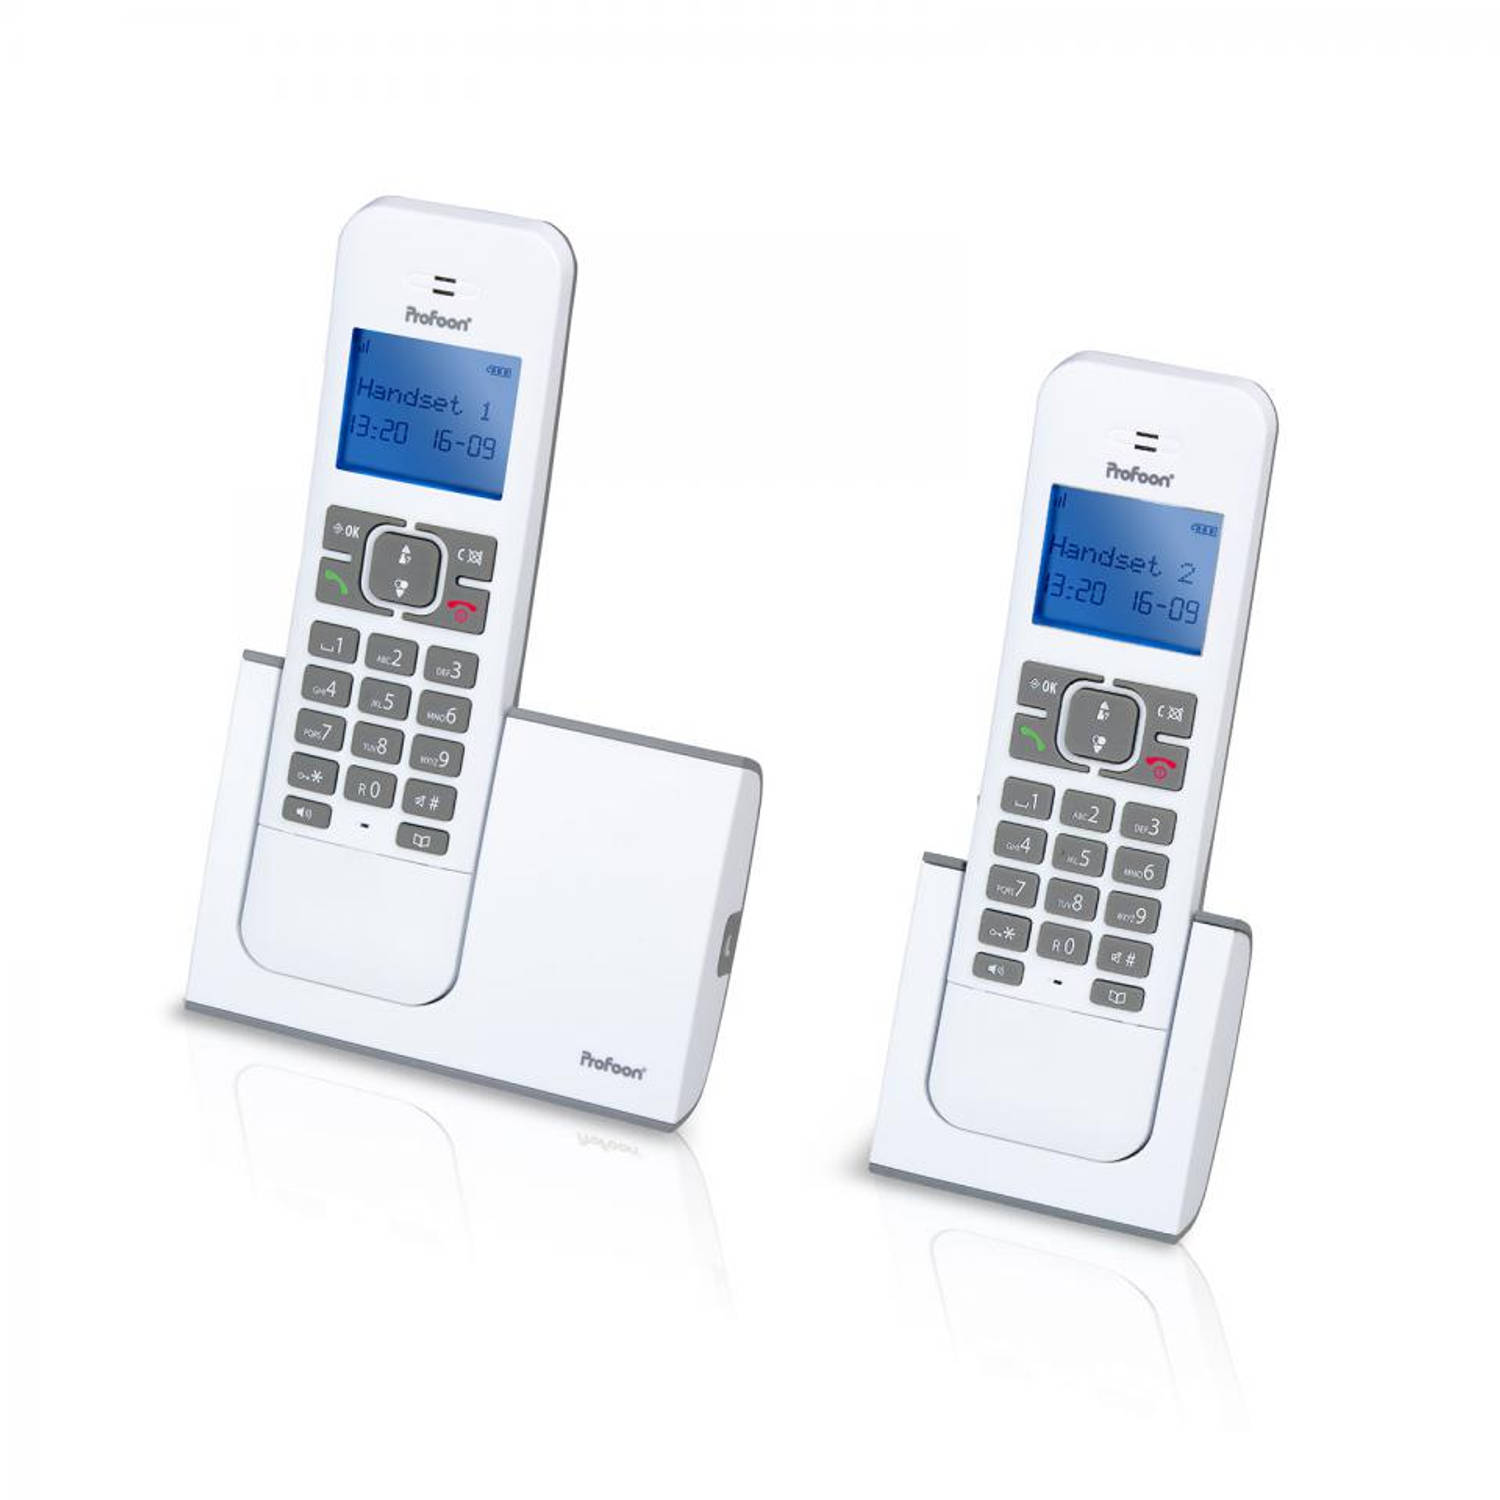 Profoon DECT PDX-8420 WT/GS